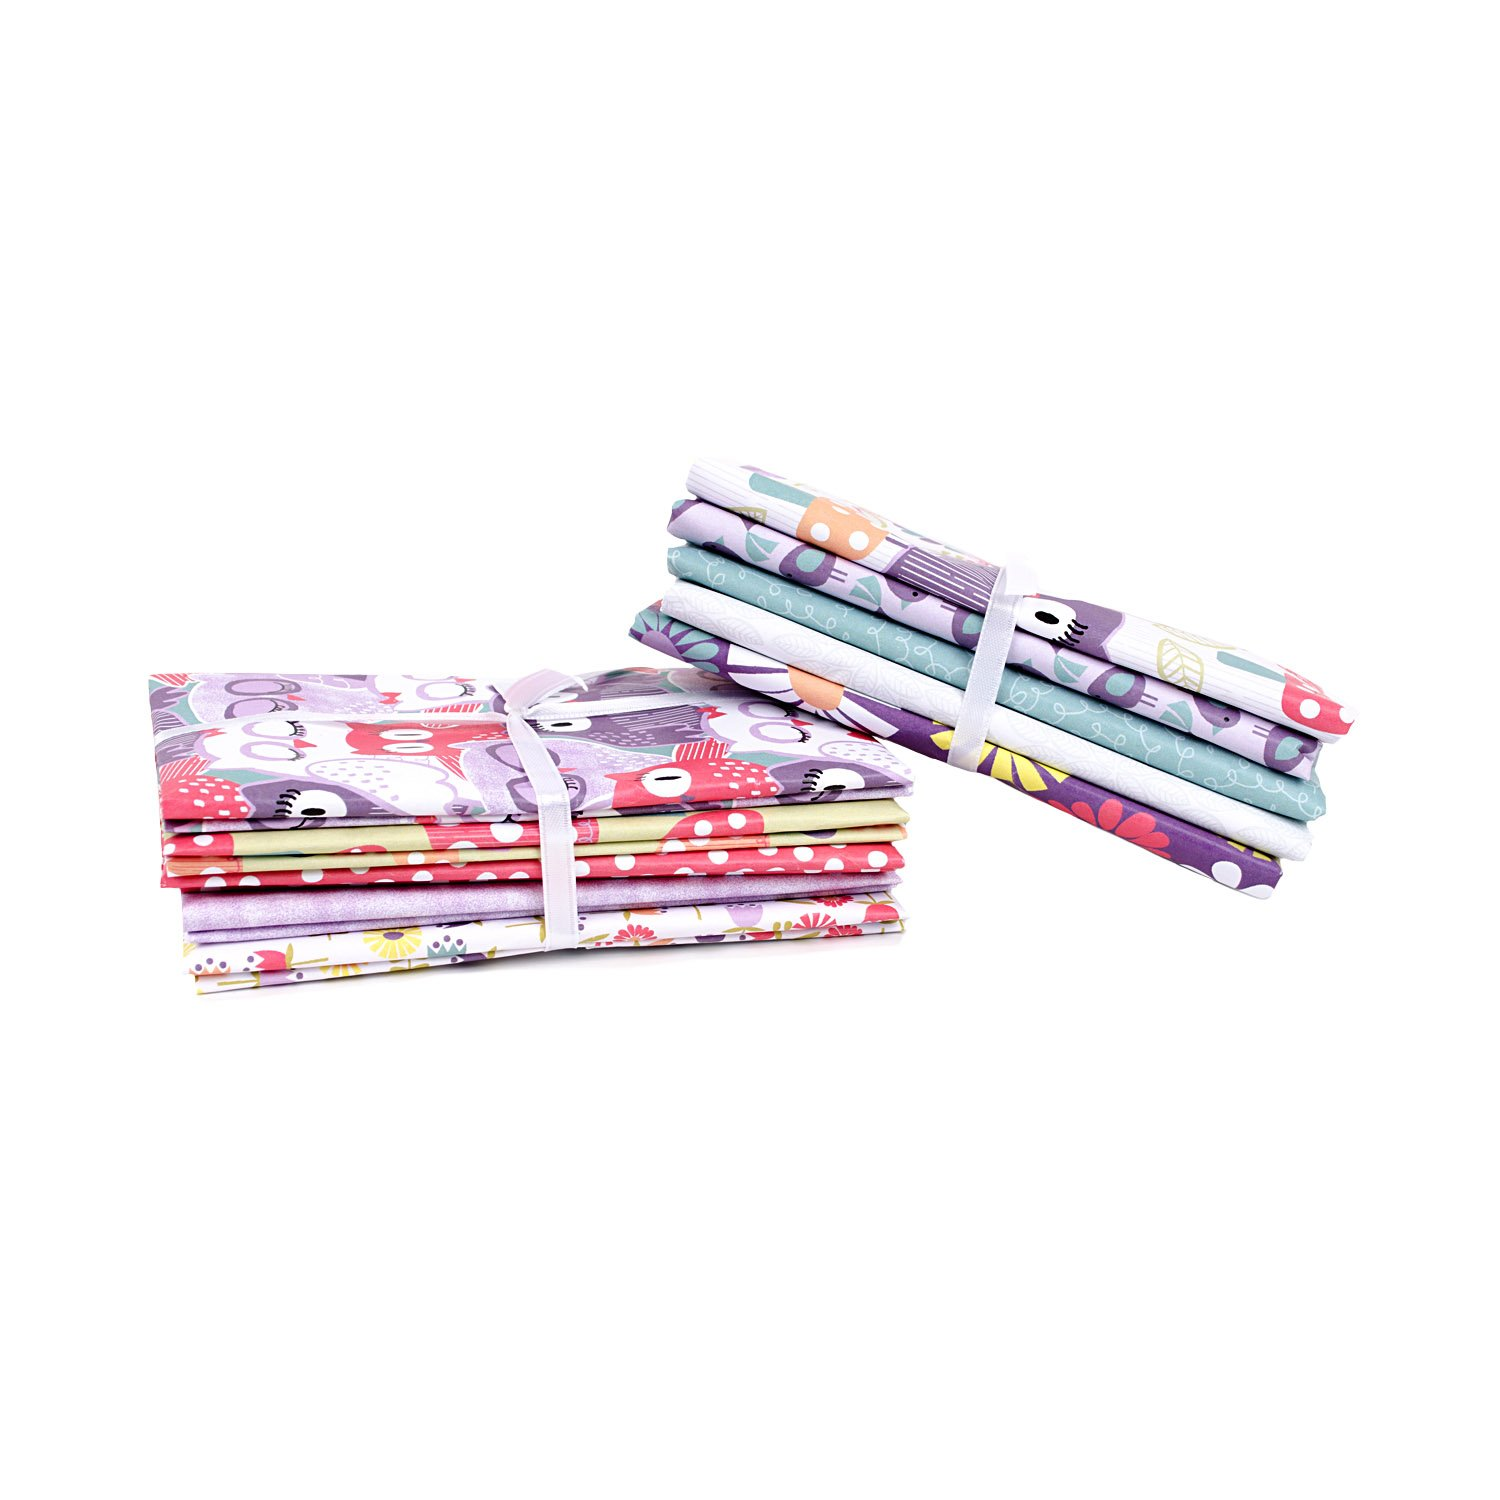 Fabric Palette 5pc Bundle<br>Pippet Moesby Collection<br>MD-G-BND-AC